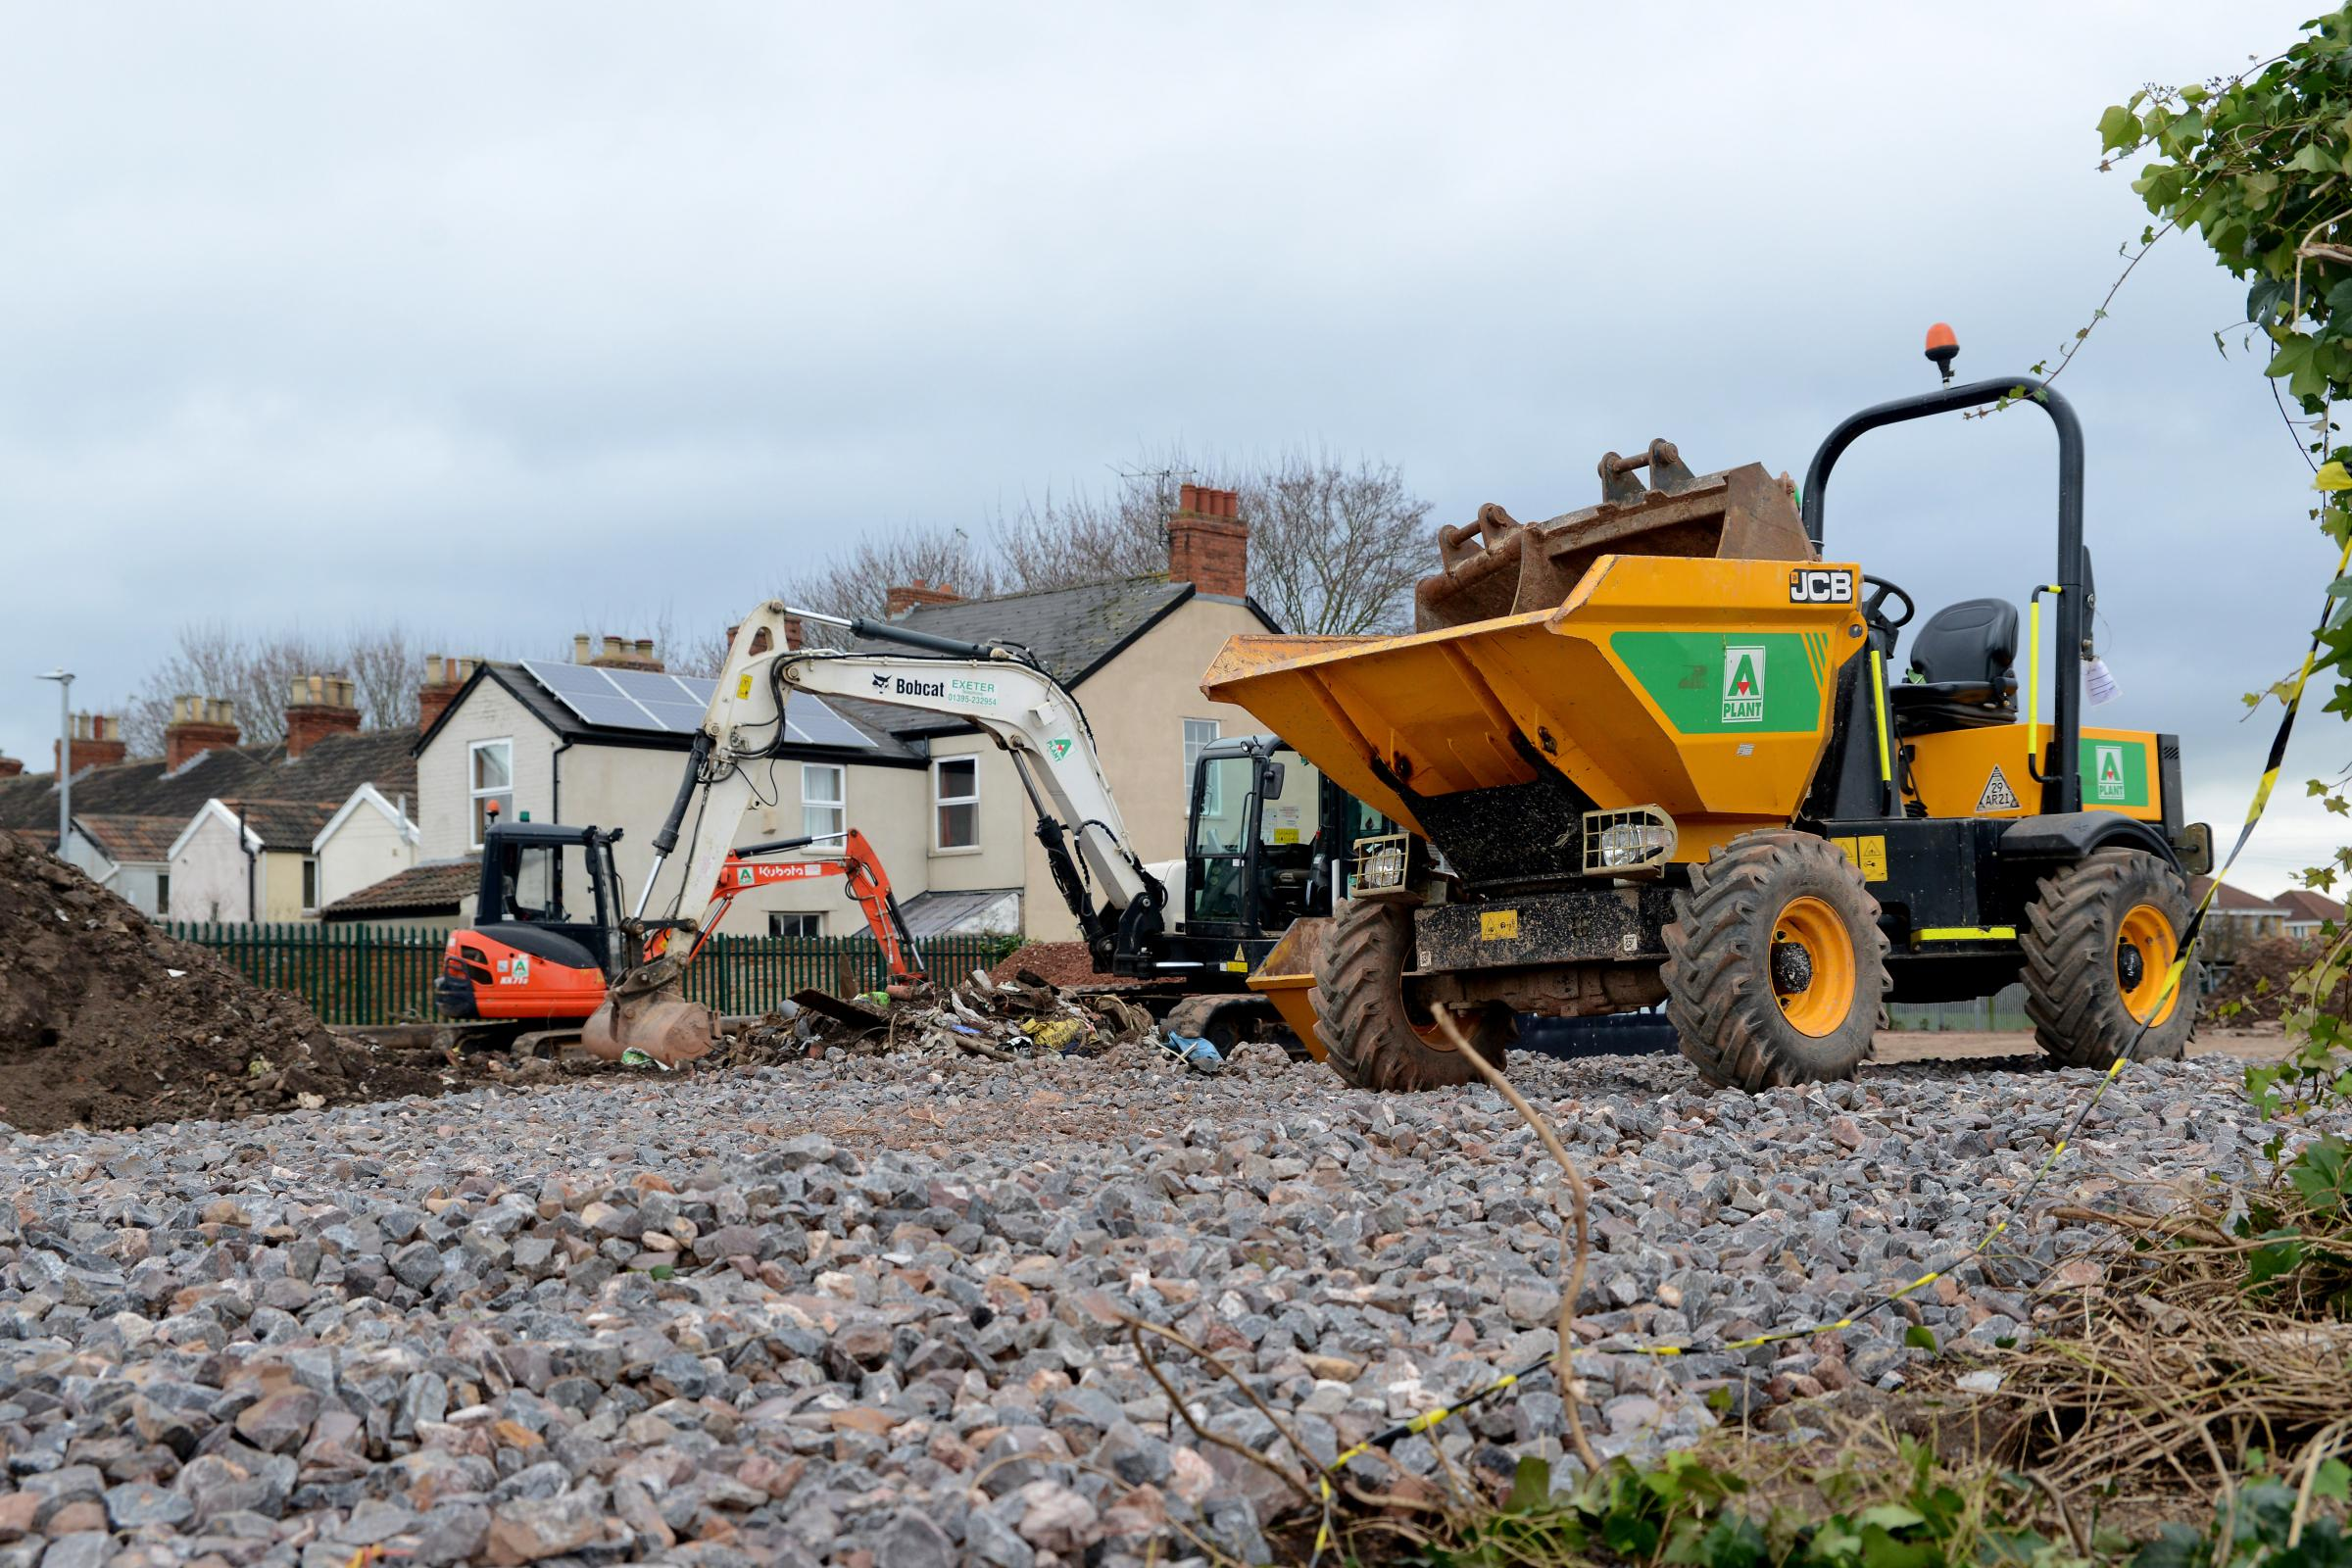 LEVELLING OUT: Obridge Yard, in Taunton, which is to become a temporary car park